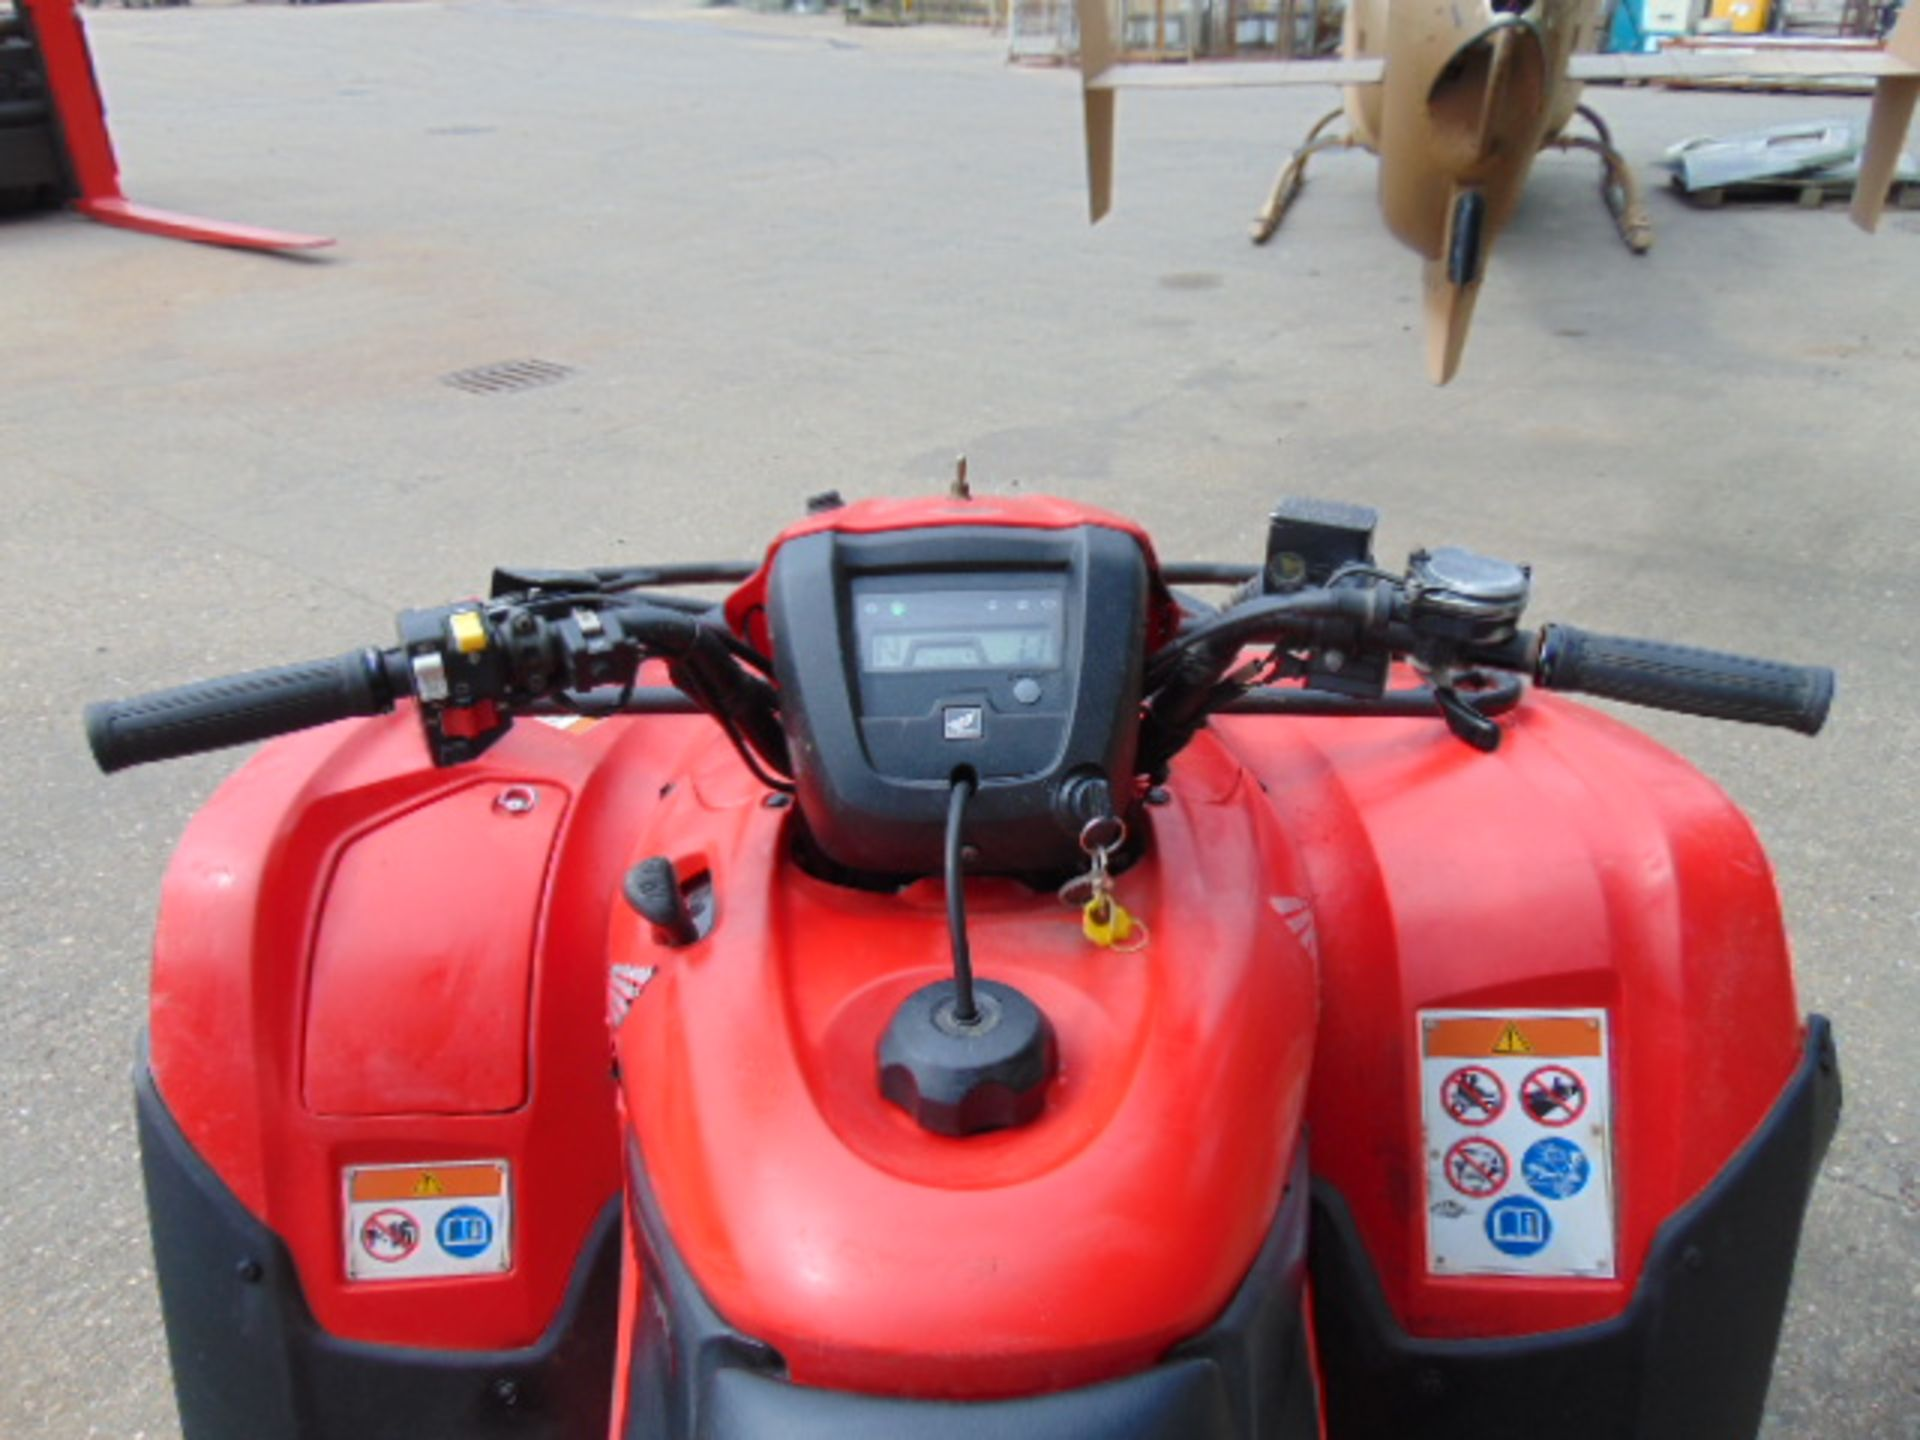 Honda TRX 500 4WD Quad Bike ONLY 2,300 HOURS! - Image 11 of 20